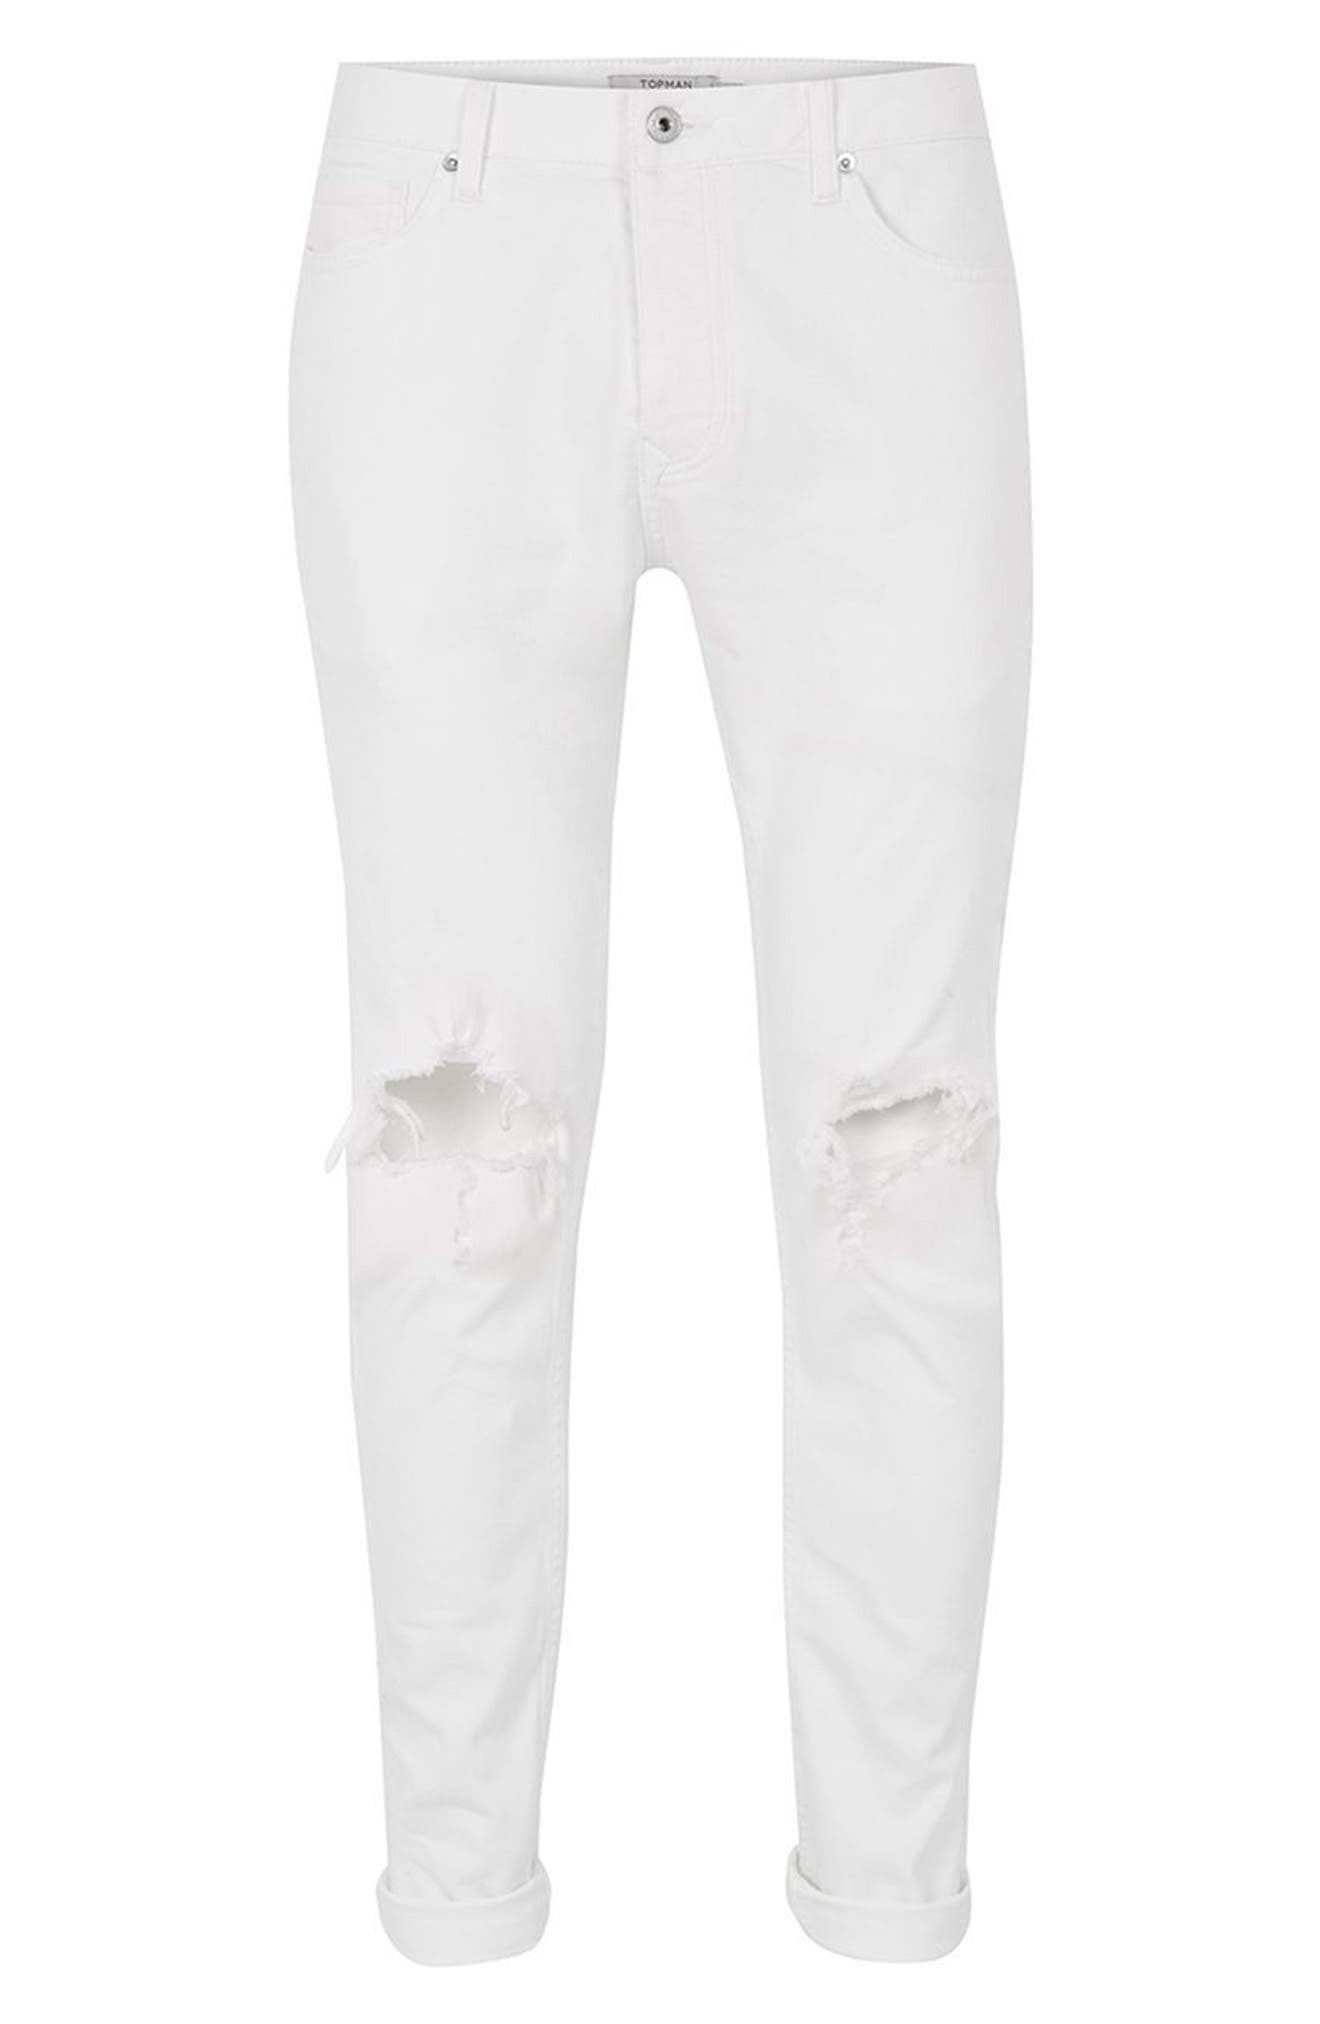 Ripped Skinny Jeans,                             Alternate thumbnail 4, color,                             White